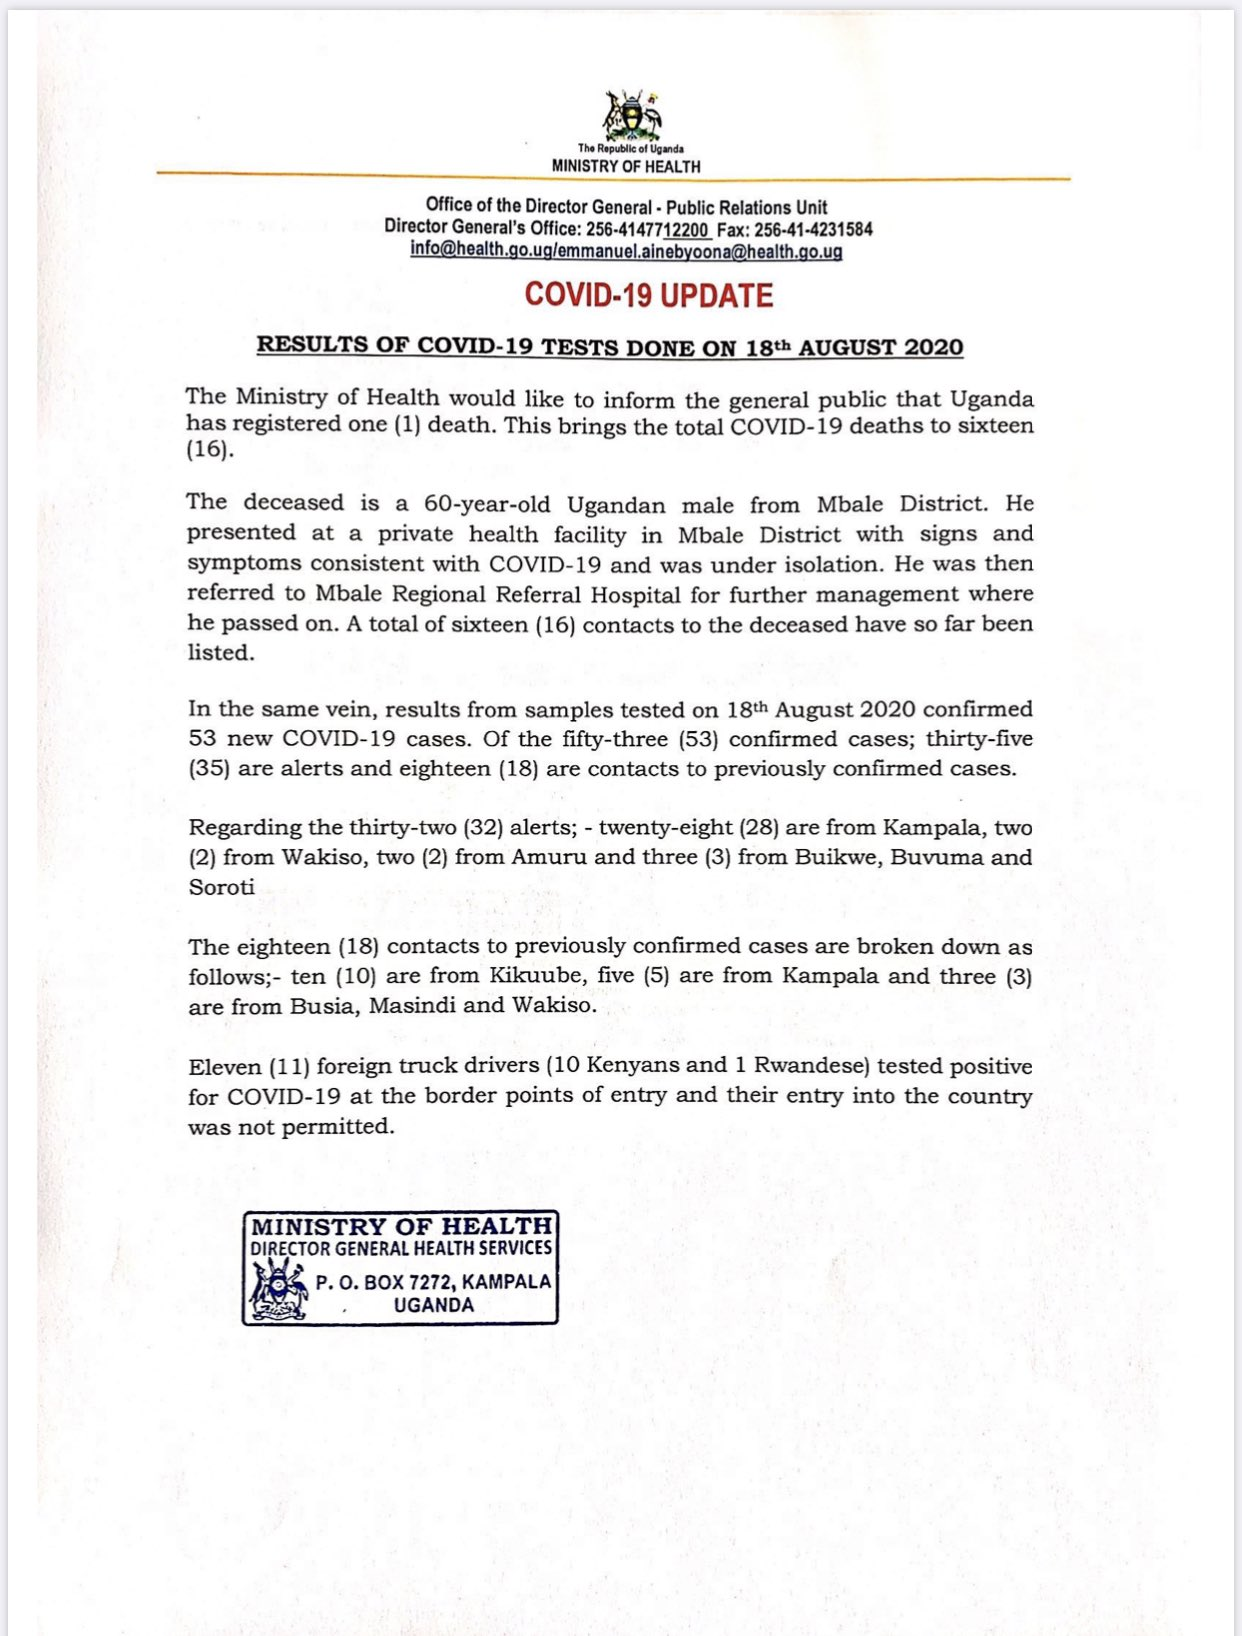 MoH statement on COVID-19